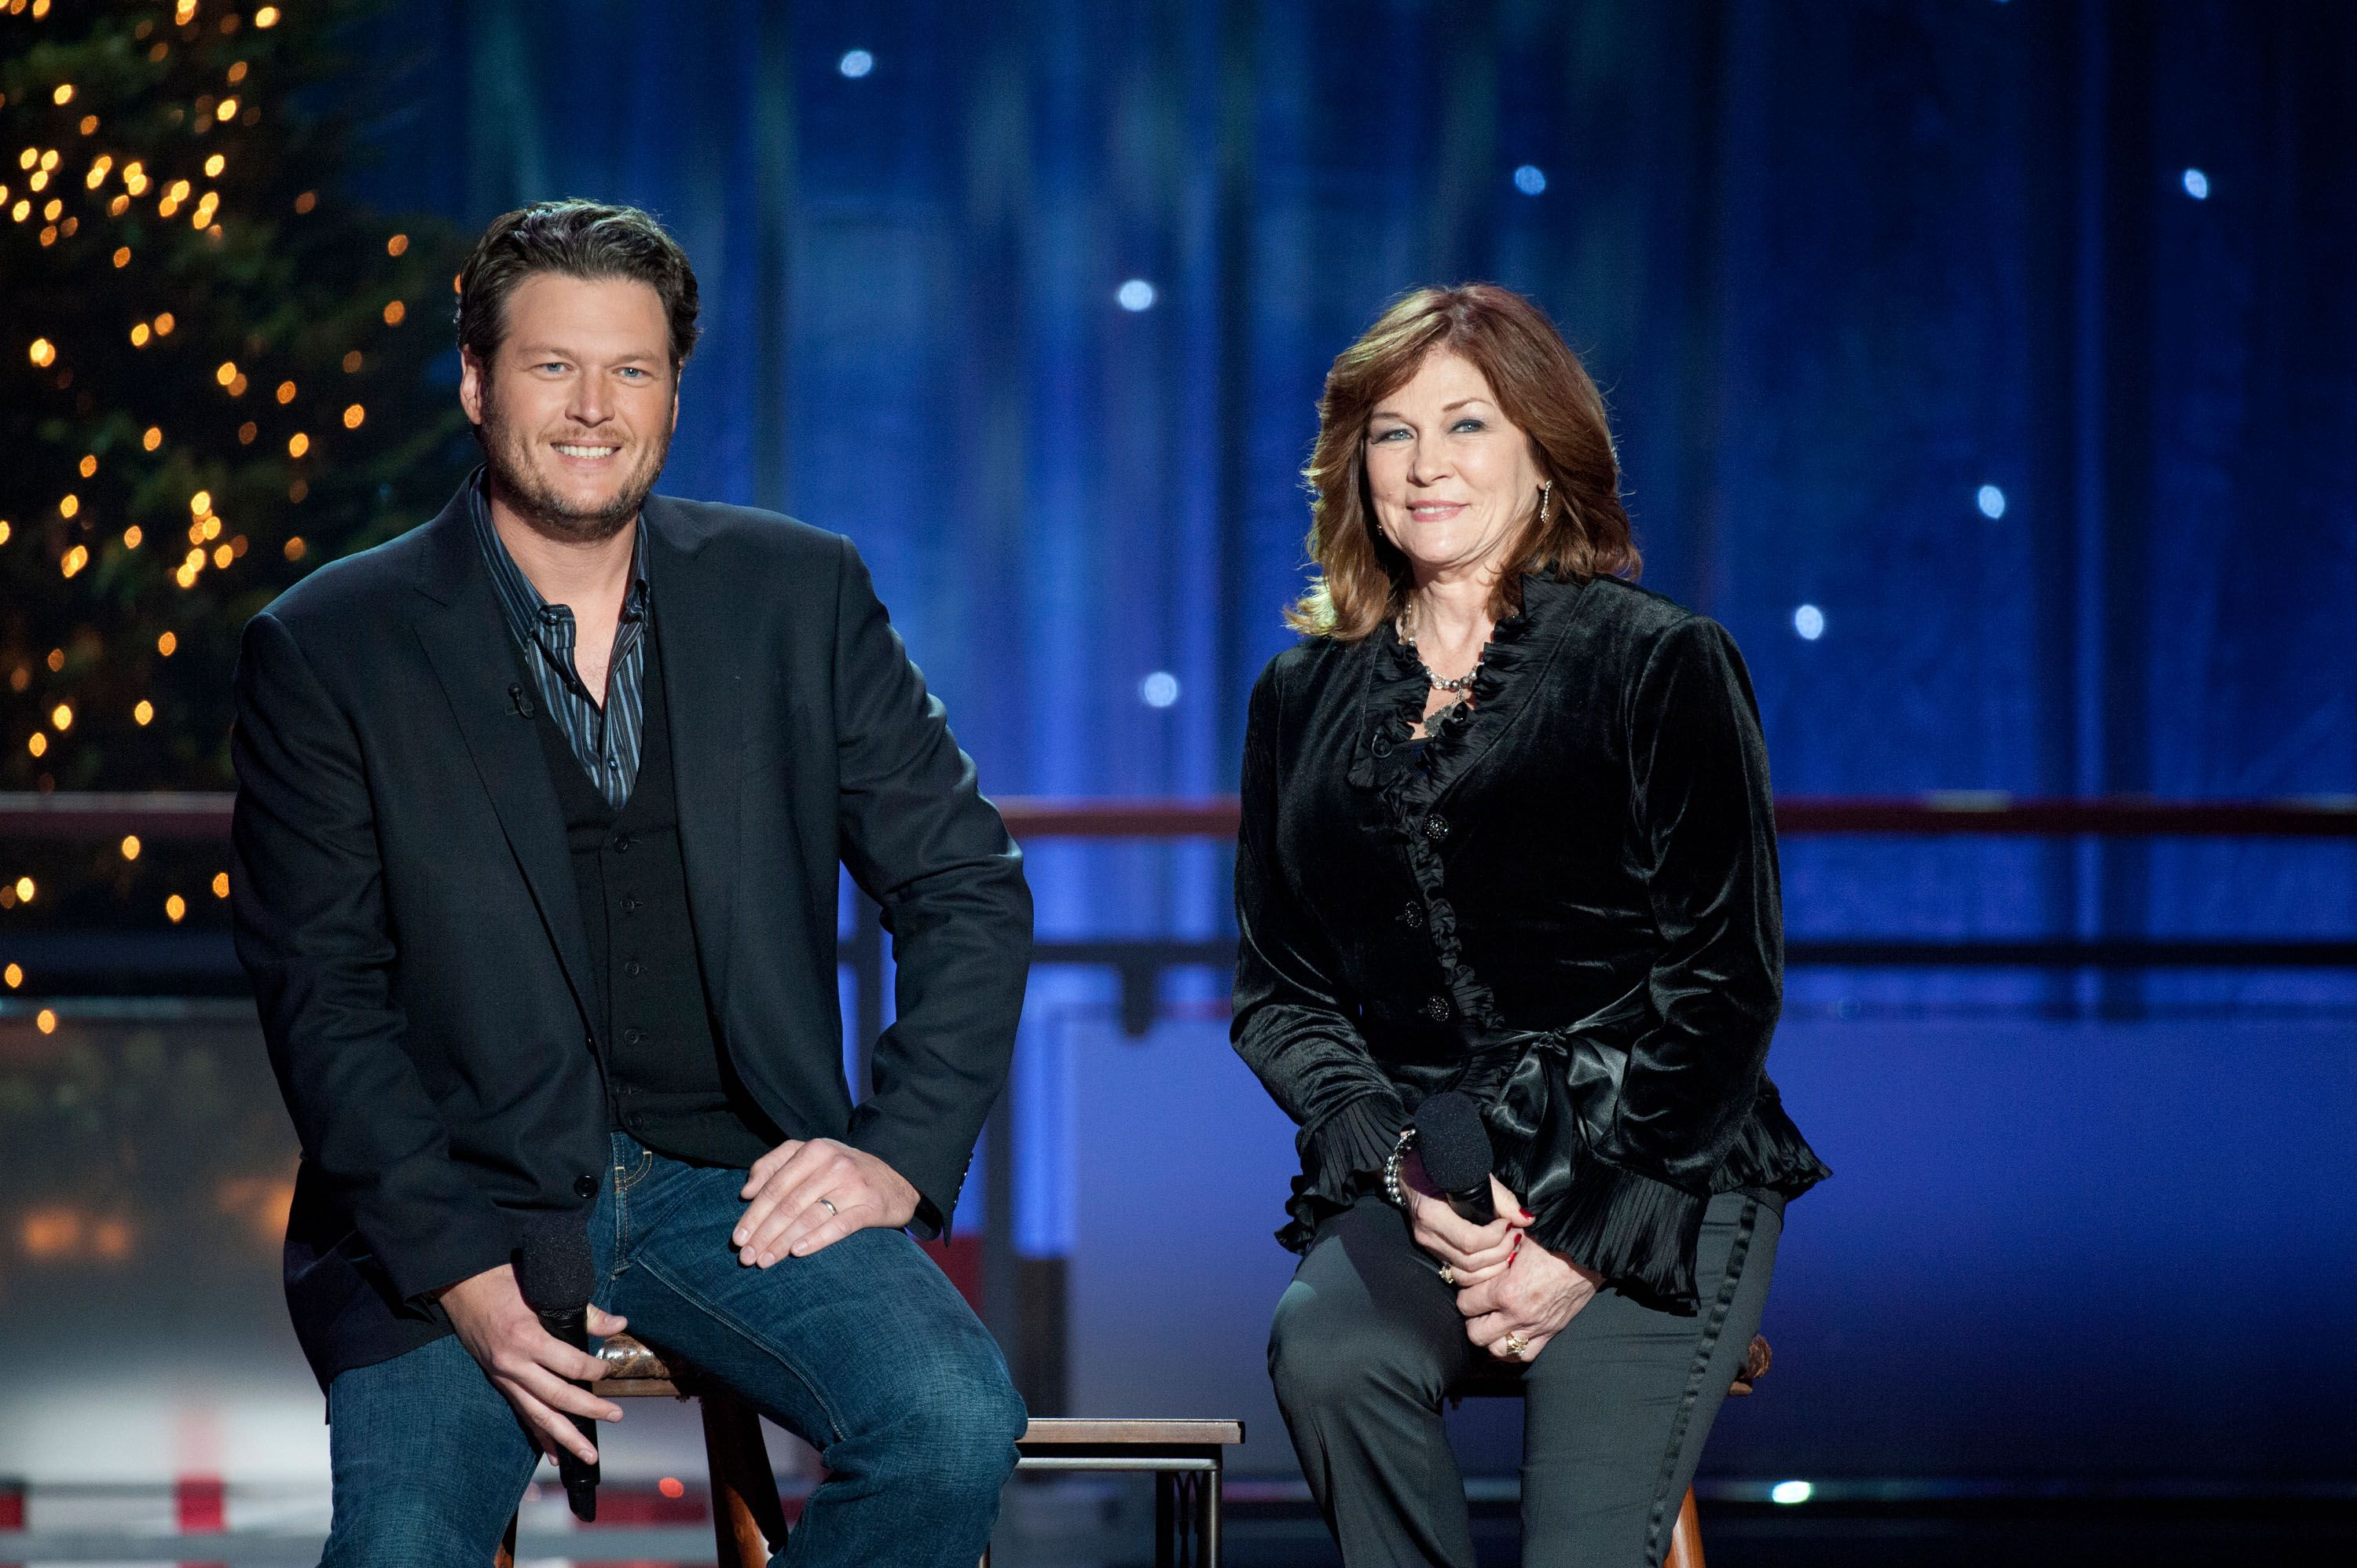 Coming Home For Christmas Hallmark.All About Blake Shelton S Hallmark Movie Time For Me To